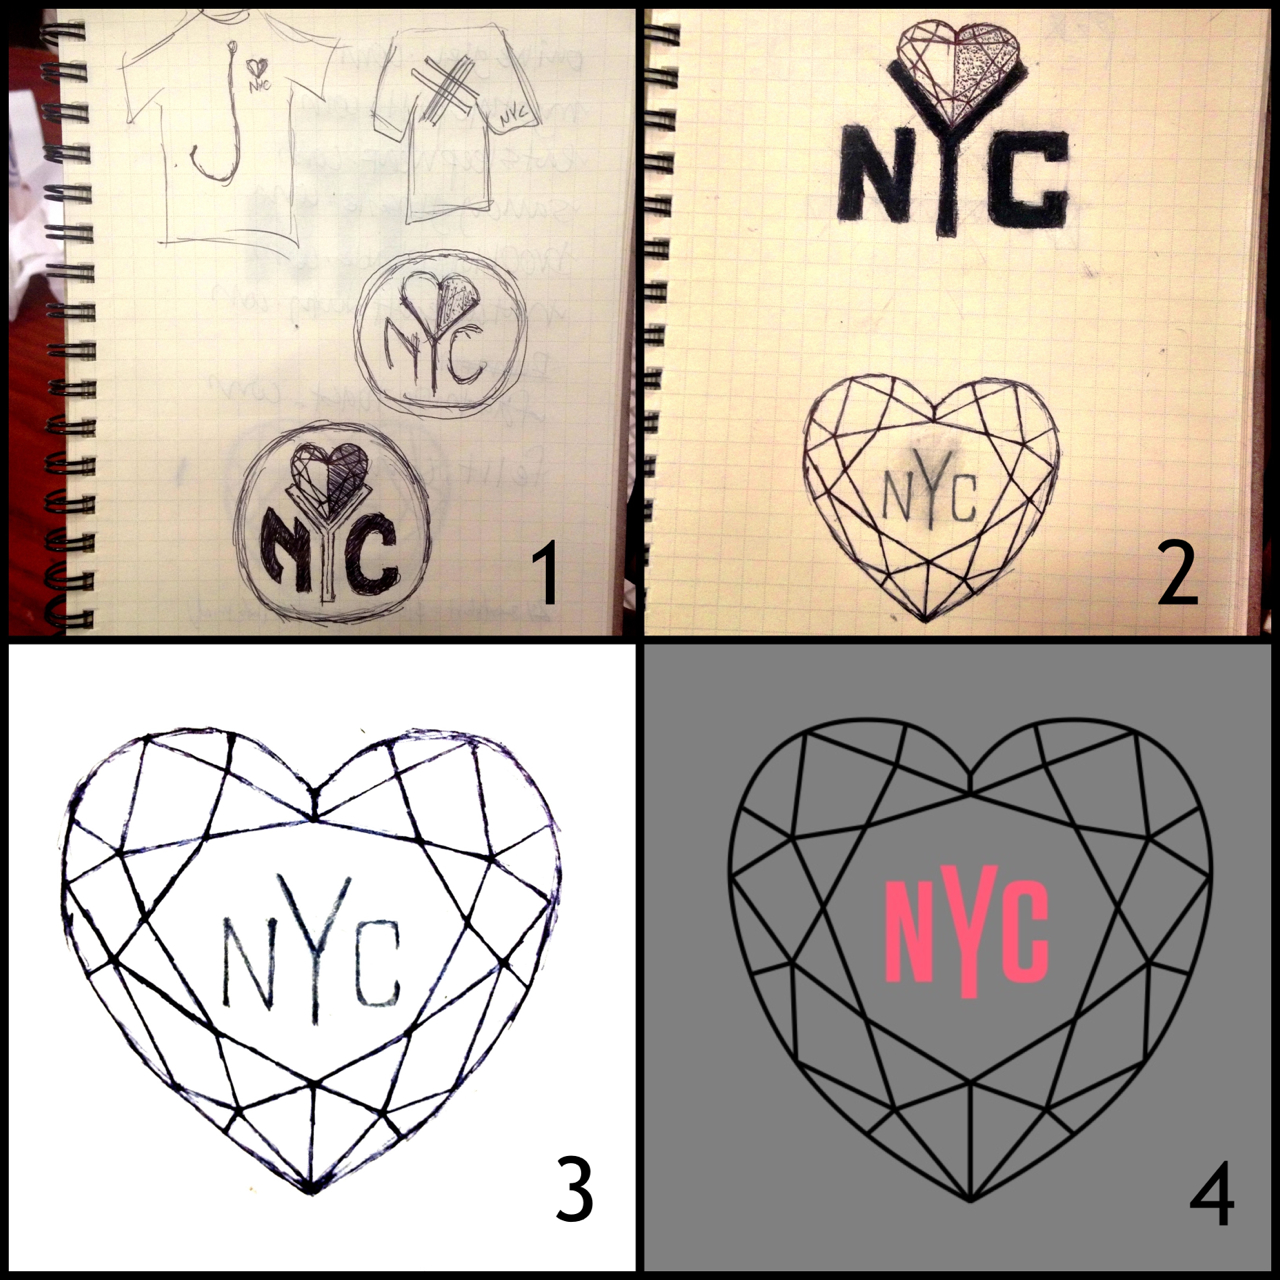 "We wanted to let y'all in on the creative process behind our latest 'loveNYC' graphic and how it came to be! At stage ONE, we (Thurman & Torrence), along w/ our homie & partner John Paul, kinda shot in the dark with a few ideas. We used the N.Y. Knicks' current logo as a reference and we did what we could to work the ""LOVE"" in there some kinda way. Stage TWO is where the diamond-heart idea was birthed. Hearts are pretty common & easily associated with ""love"", so we wanted to keep that easy association while choosing to deter to something less conventional than a regular, average heart. We also preferred the ""diamond-heart"" because it is more symbolic in that it embodies strength, beauty, toughness, & love all into one symbol. The top design in stage TWO was our favorite, especially Torrence's, until JP had the idea of putting the ""NYC"" on the inside of the diamond-heart. That turned out to be a great idea! Thurman free-handed that idea at the bottom of stage TWO and a more defined version of it can be seen in stage THREE. By stage THREE, we had a nice design that was equally clean and meaningful. What usually happens in our creative process, whether pertaining to design or music, we like to seek the opinions of some of our friends and loved ones to see what they think. Once we got the feedback we desired for this design, we then knew it was time to turn to the amazing Gabi Ferrara! One of the many reasons we love working with her is that she always does an awesome job with mixing her own creative taste with ours. On this design, we decided to use the Tungsten font for ""NYC"" because it's a clean, sharp, & simple type. The color scheme for this design is the same as the one previous because we sought to keep some uniformity in the graphics throughout this 'loveNYC' campaign. We sent Gabi what you see in stage THREE and she transformed it into the finished product, what you see in stage FOUR!     We've got some new sweatshirts coming SOON, so if you didn't get one of the last ones, here's your opportunity to get your hands on one & support the cause! We'll let y'all know when they're available for purchase.      http://askthethomasbros.tumblr.com/"